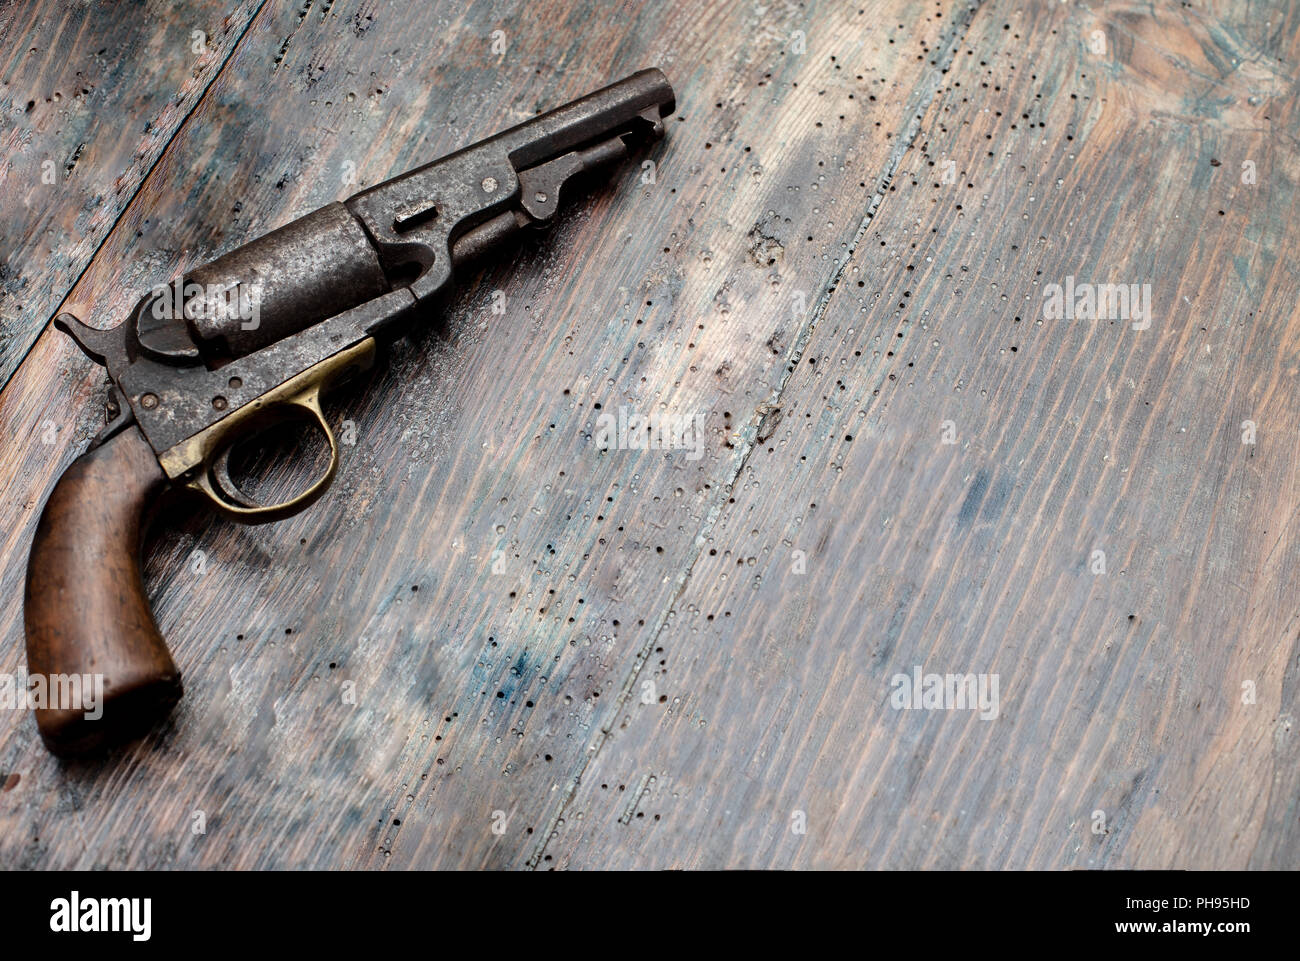 Vintage pistol on old wooden background with space for text